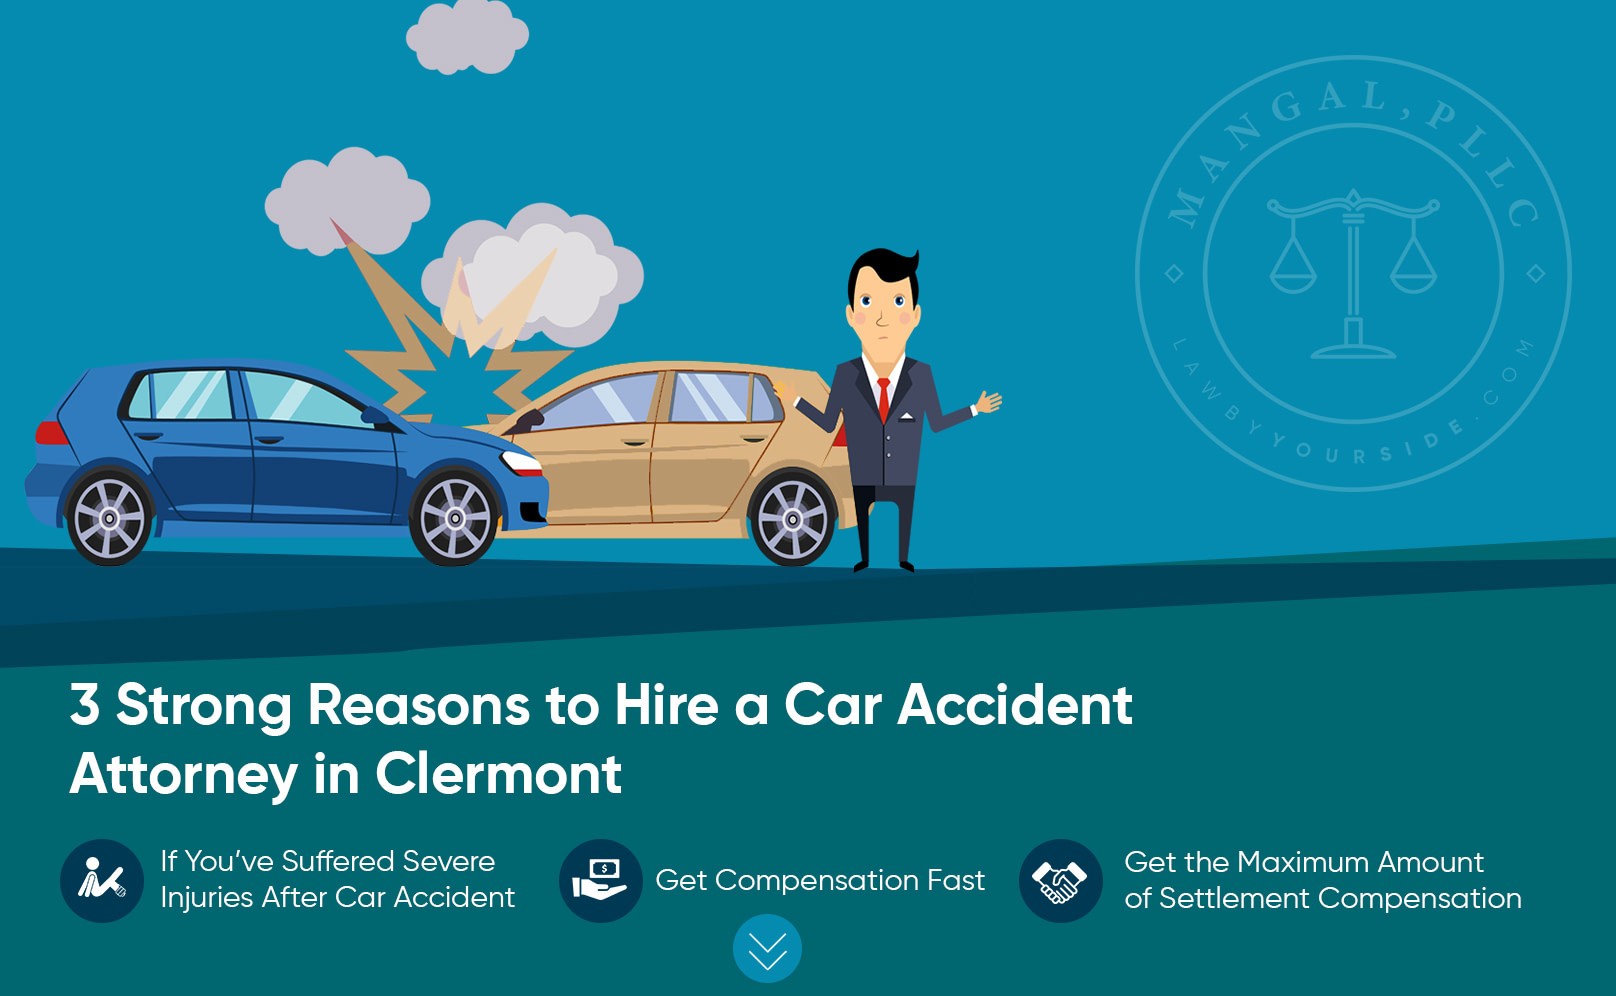 3-Strong-Reasons-to-Hire-a-Car-Accident-Attorney-in-Clermont